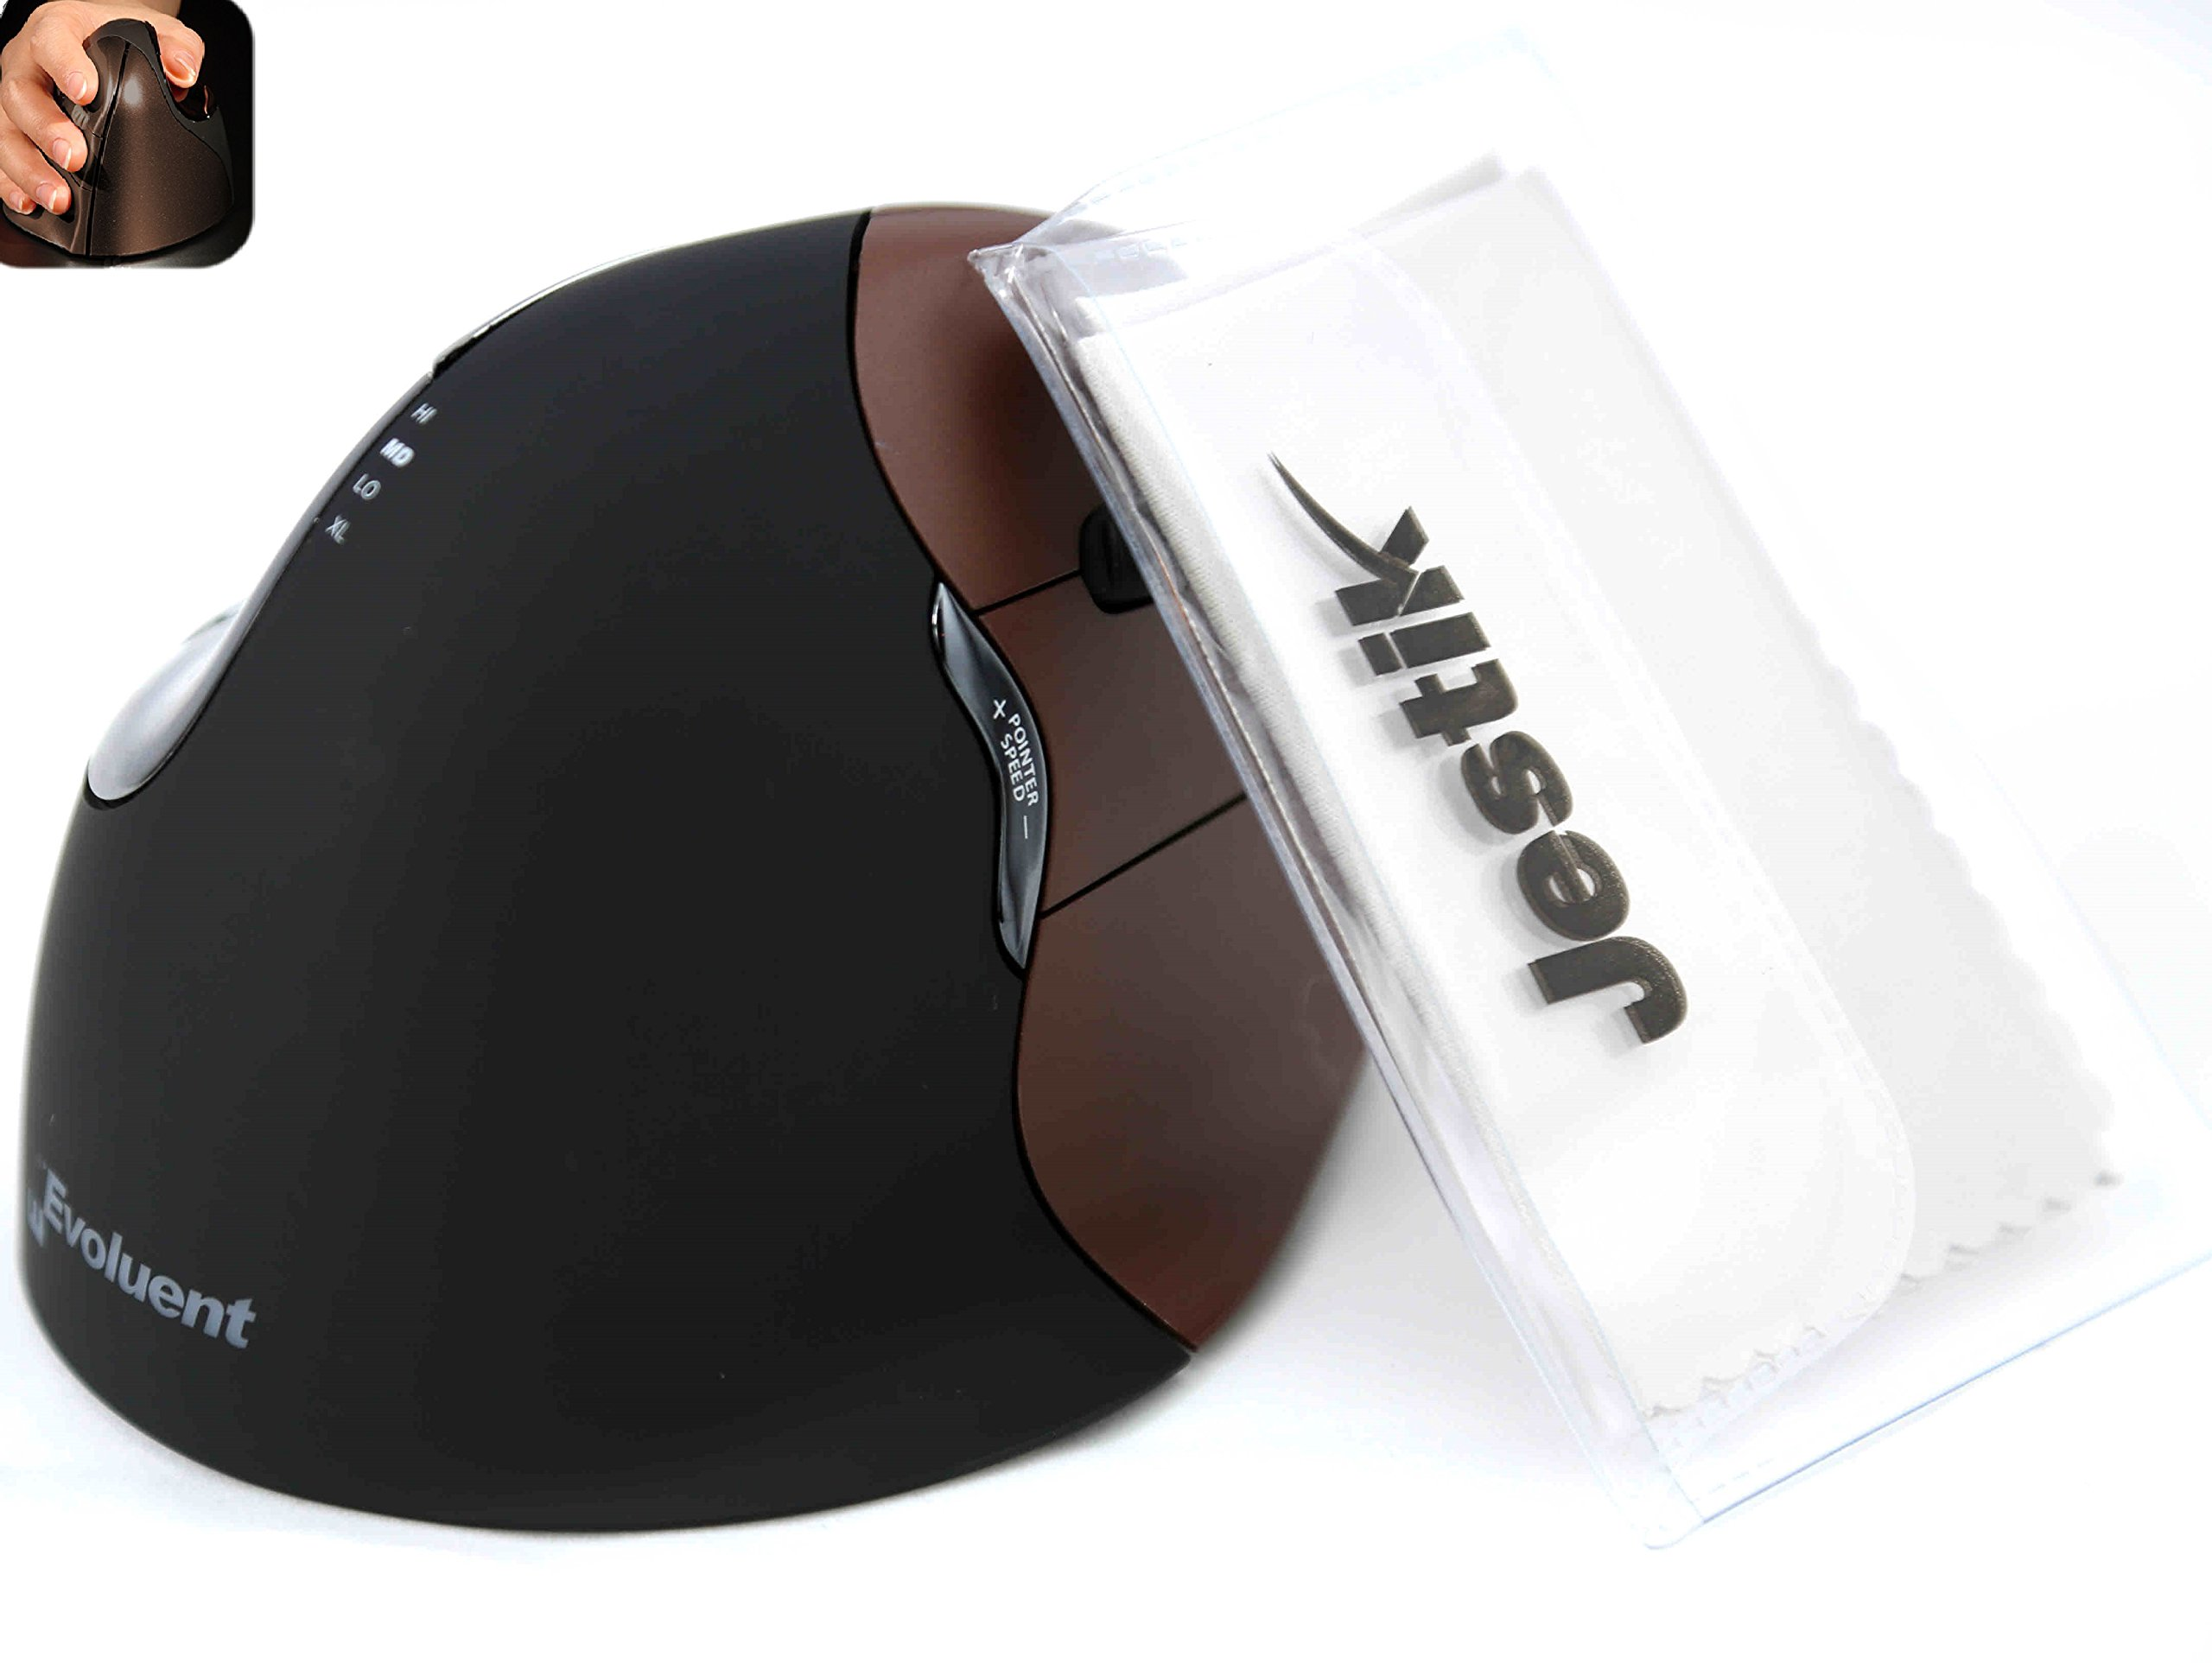 Evoluent - Ergonomical Wireless VerticalMouse & Jestik Microfiber Cloth - Right Handed - Small Size - Brown & Black by Evoluent (Image #1)